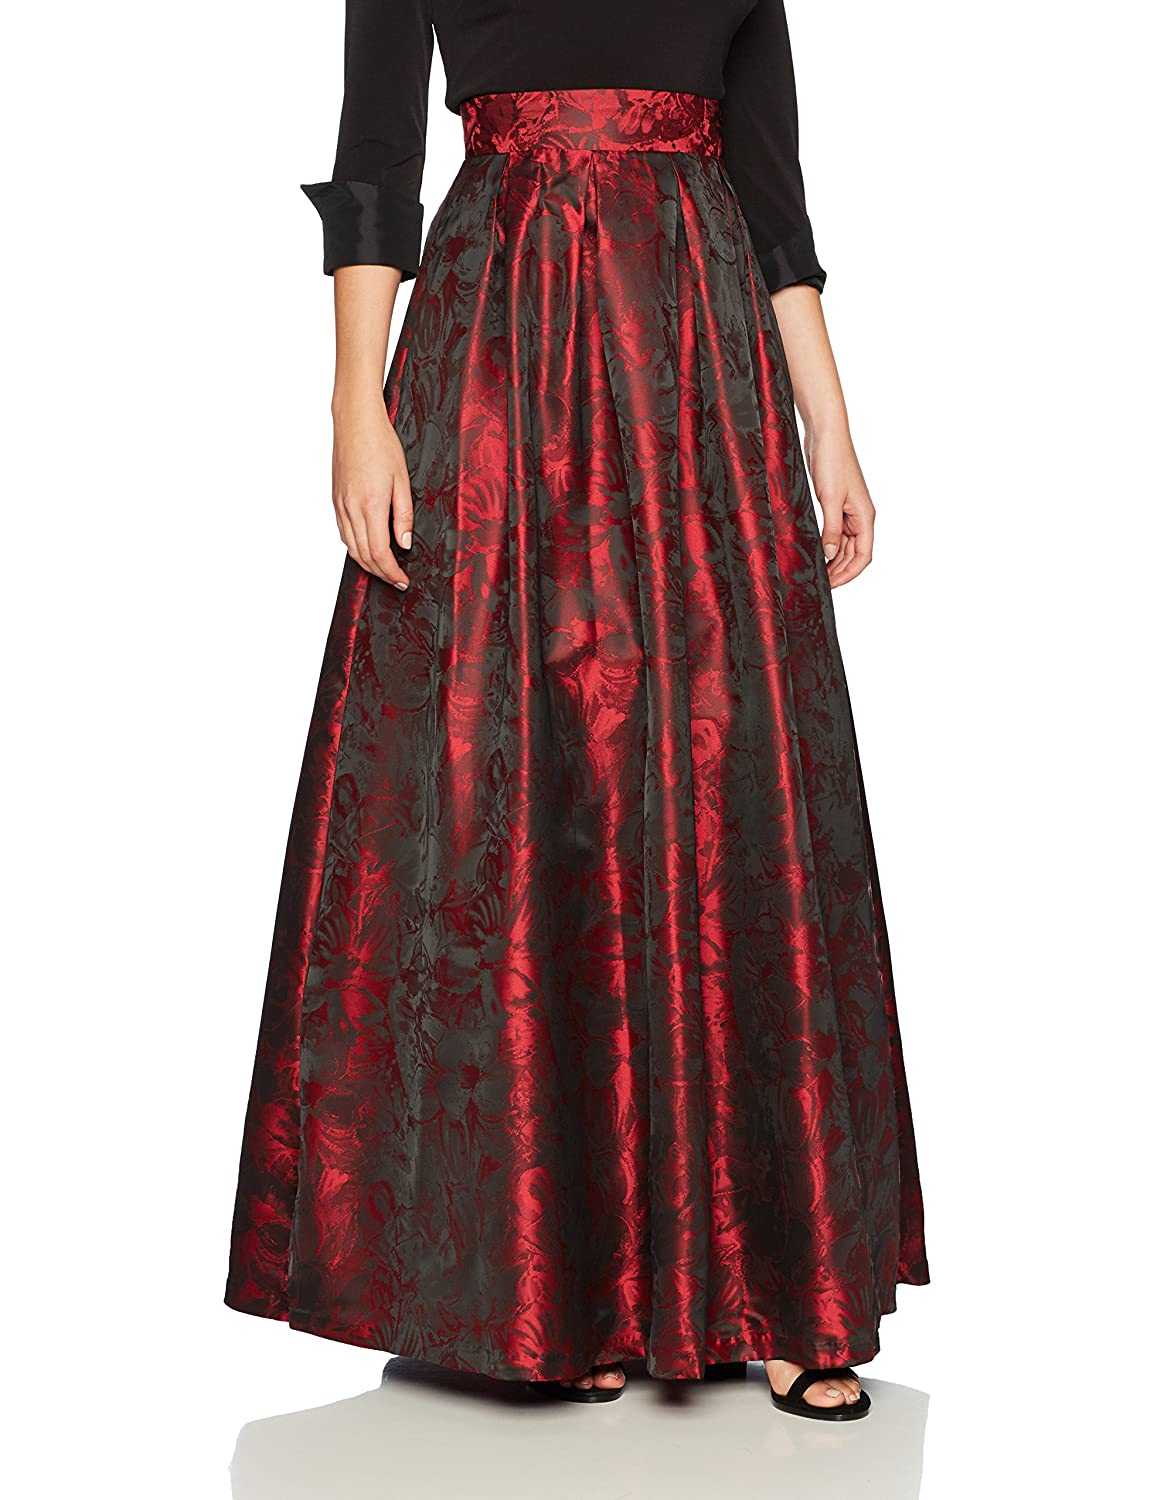 Victorian Clothing, Costumes & 1800s Fashion Jessica Howard Womens Separate Ballgown Skirt $138.00 AT vintagedancer.com